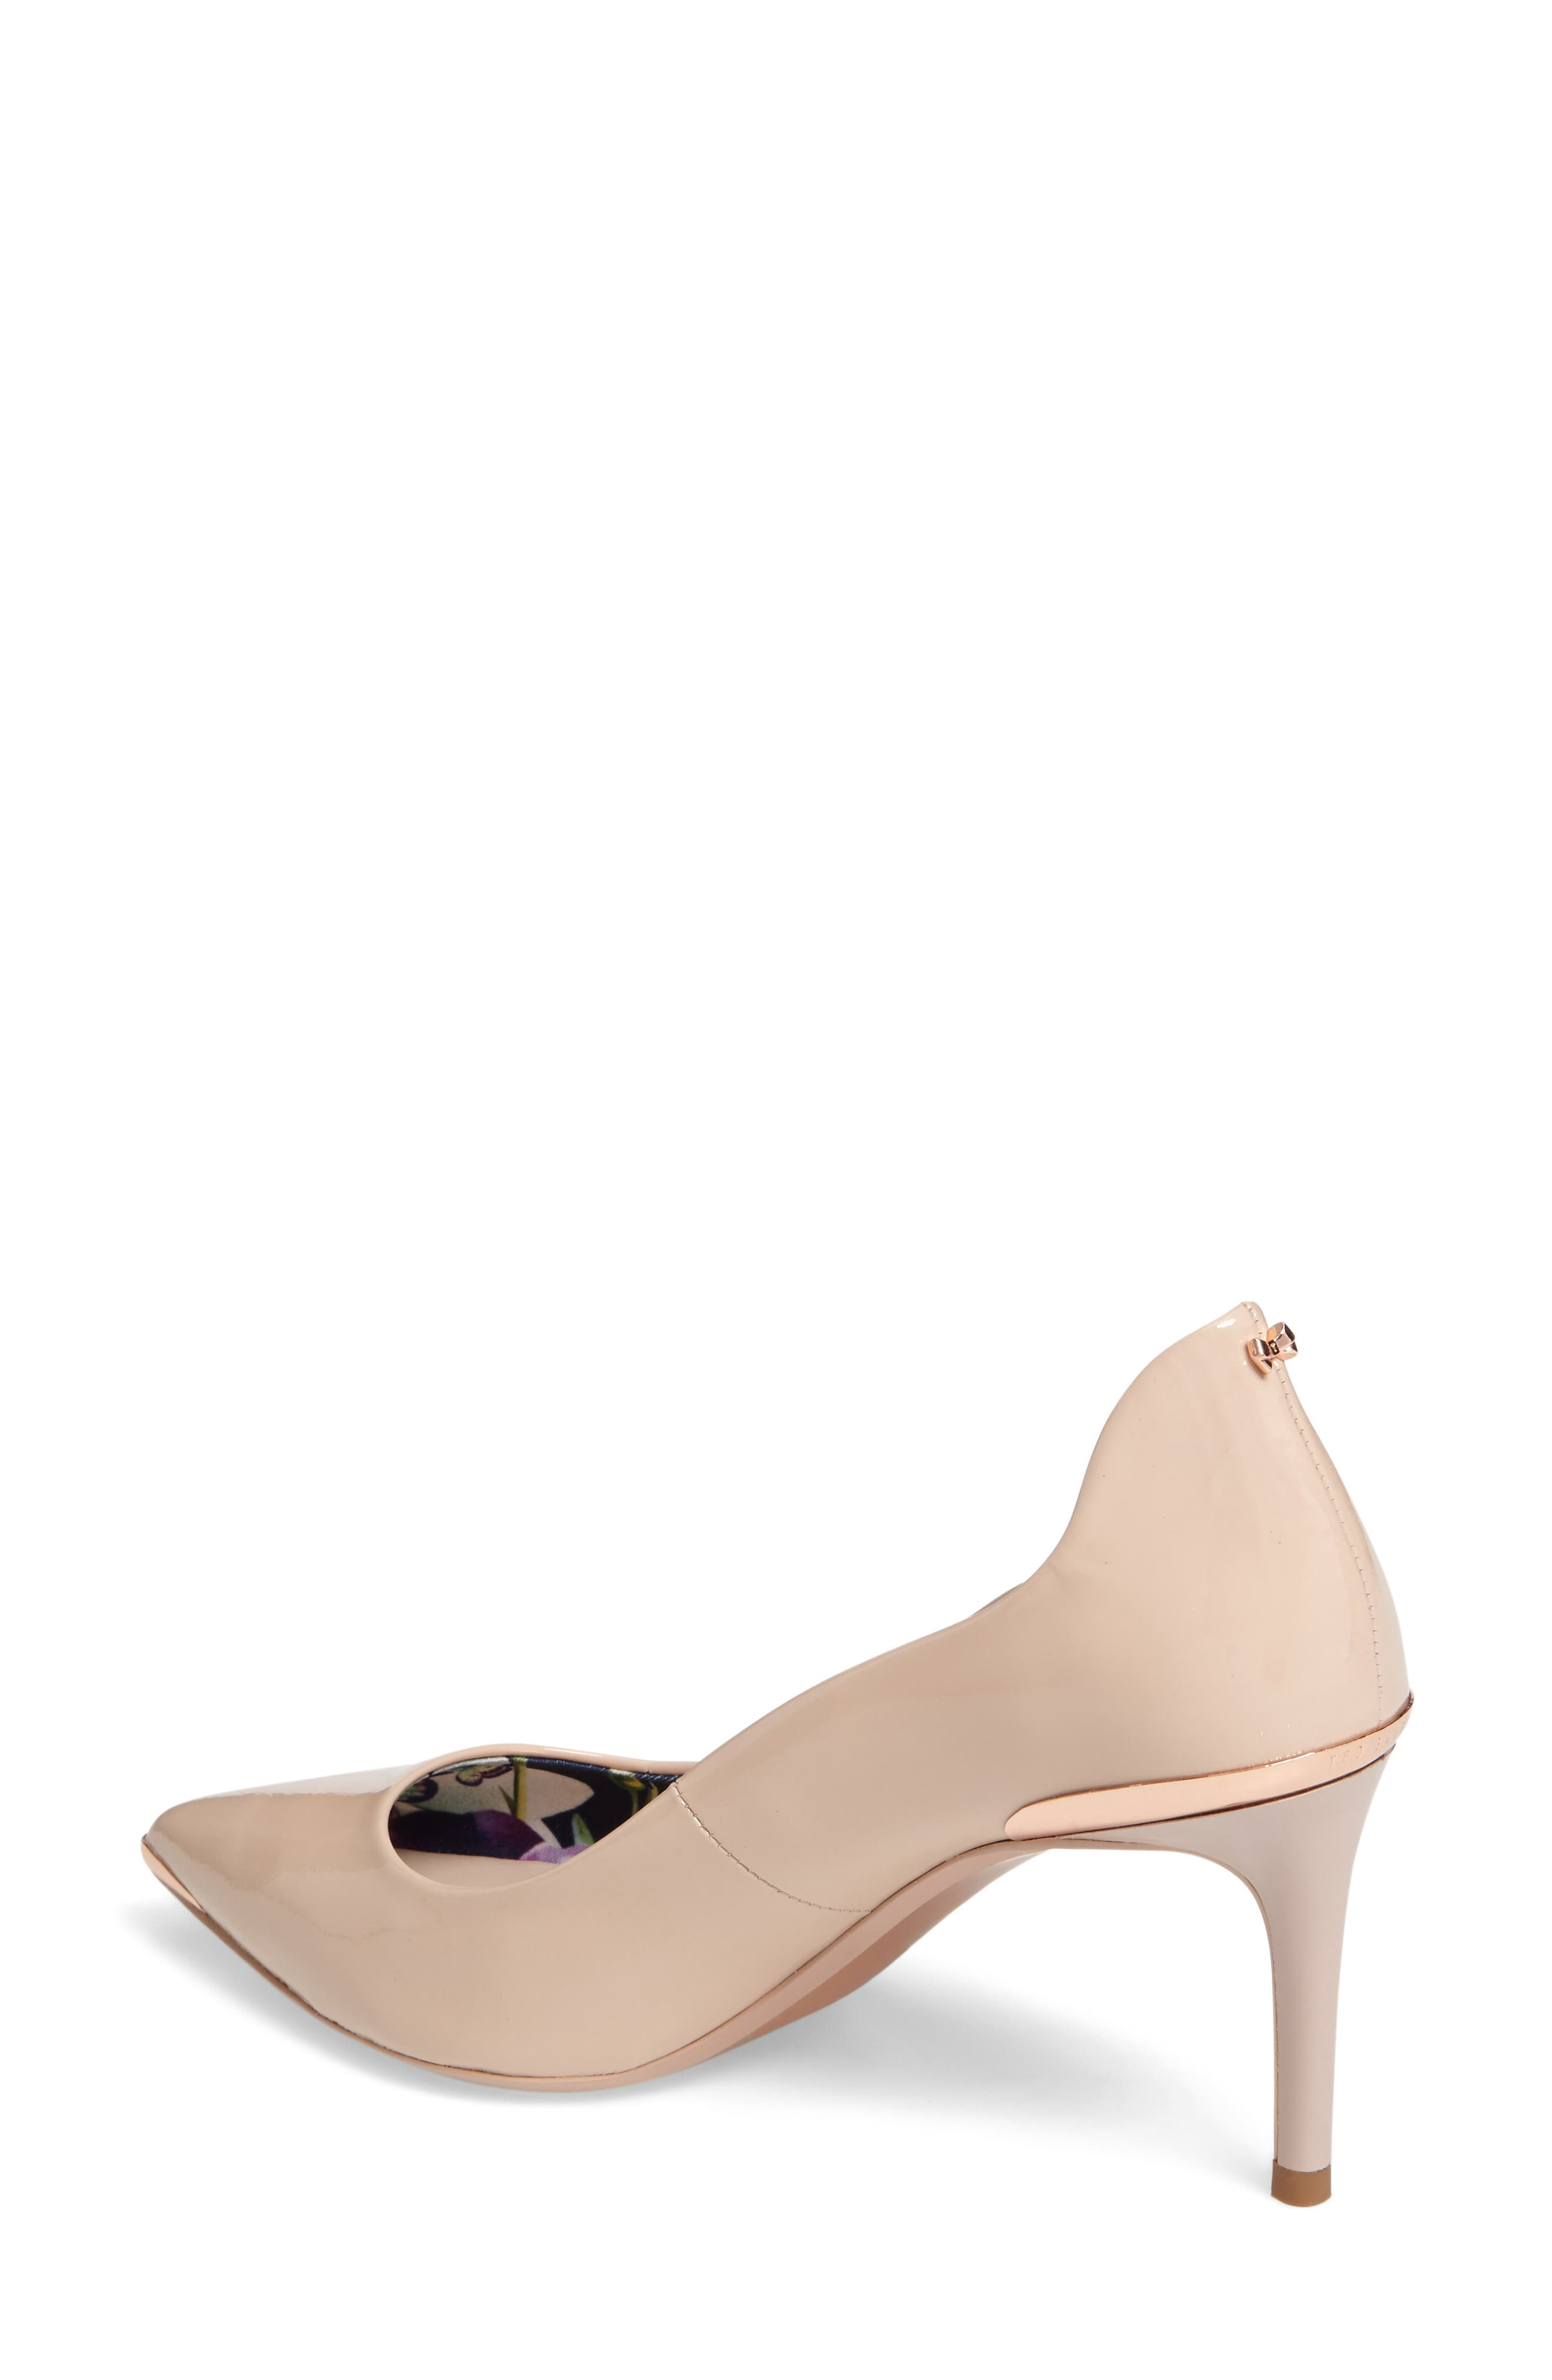 Vyixin Pump,                             Alternate thumbnail 2, color,                             NUDE PATENT LEATHER